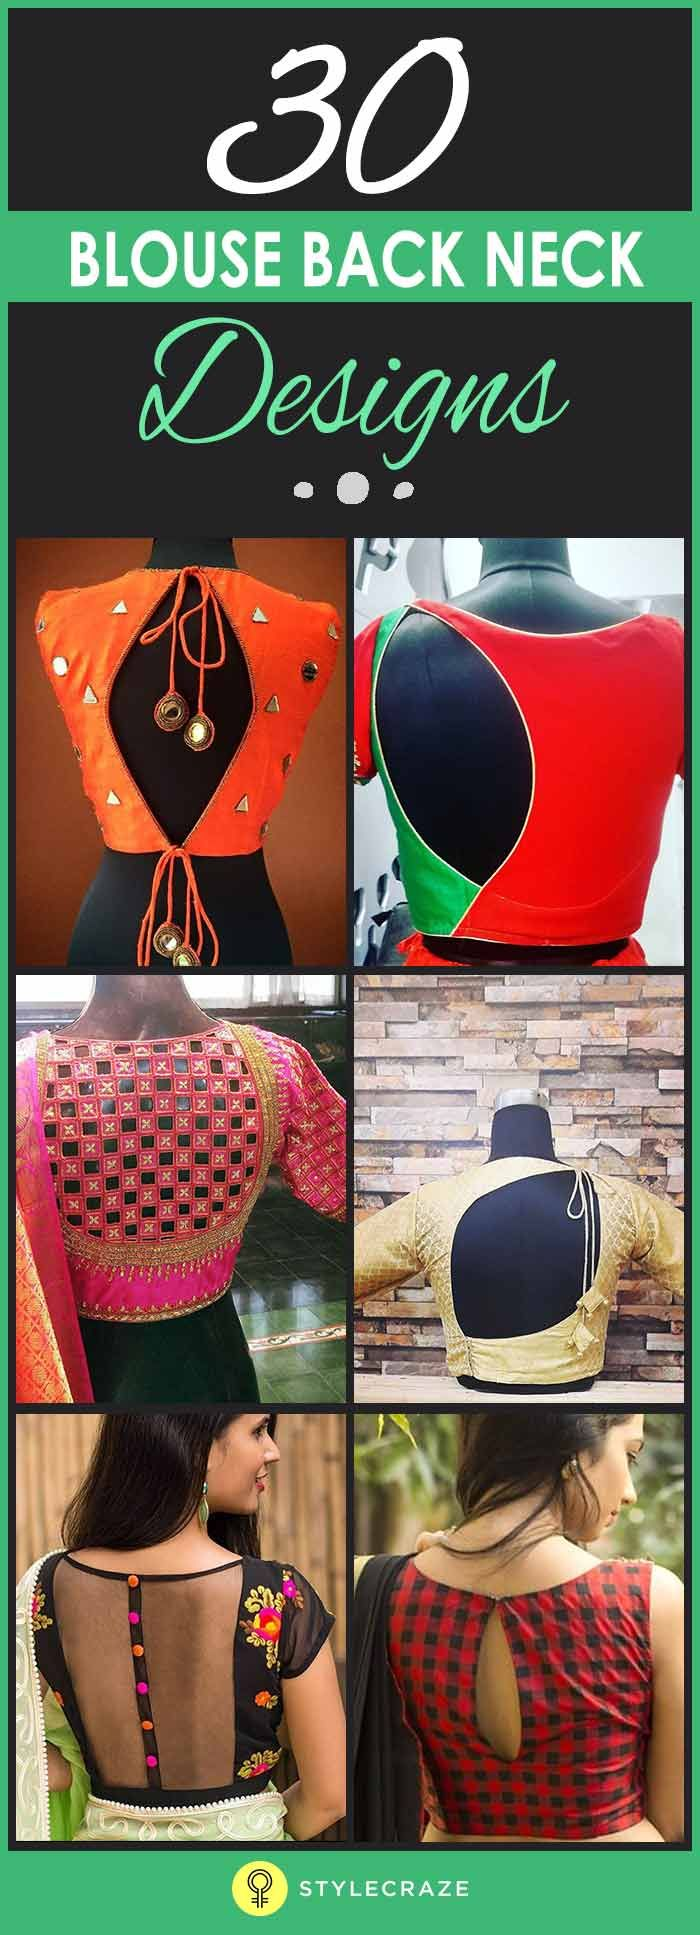 30 Latest Blouse Back Neck Designs In 2019